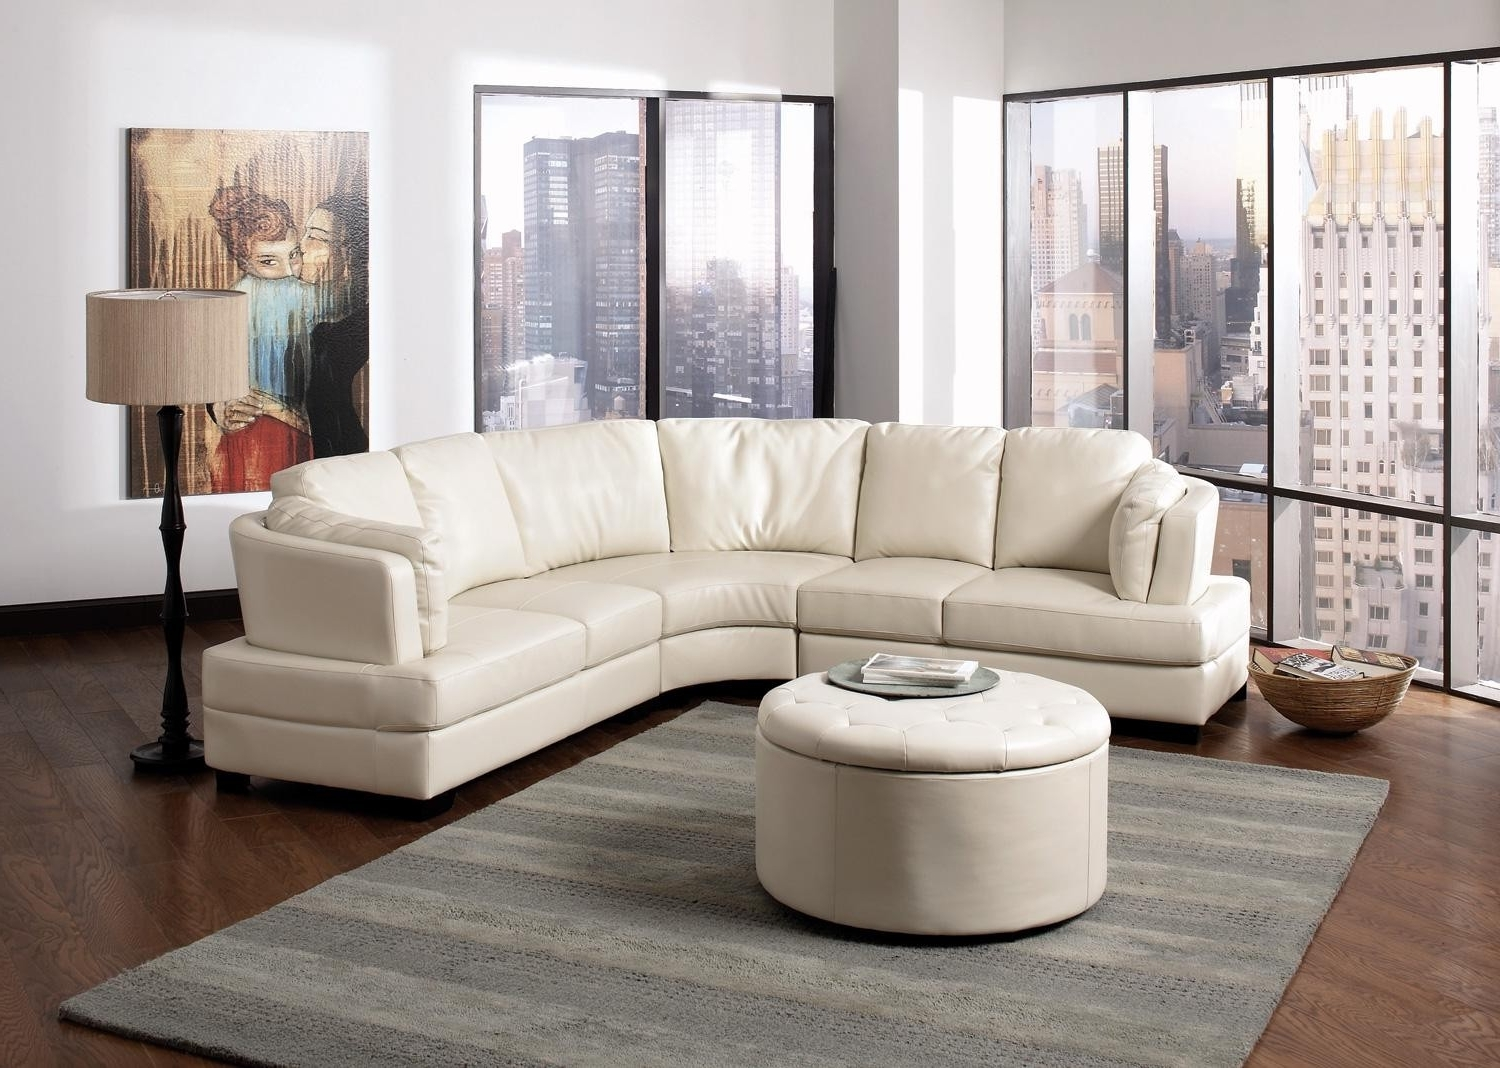 Bedroom: Awesome U Shaped Sectional Canada U Shaped Sectionals With Favorite Canada Sectional Sofas For Small Spaces (View 7 of 20)